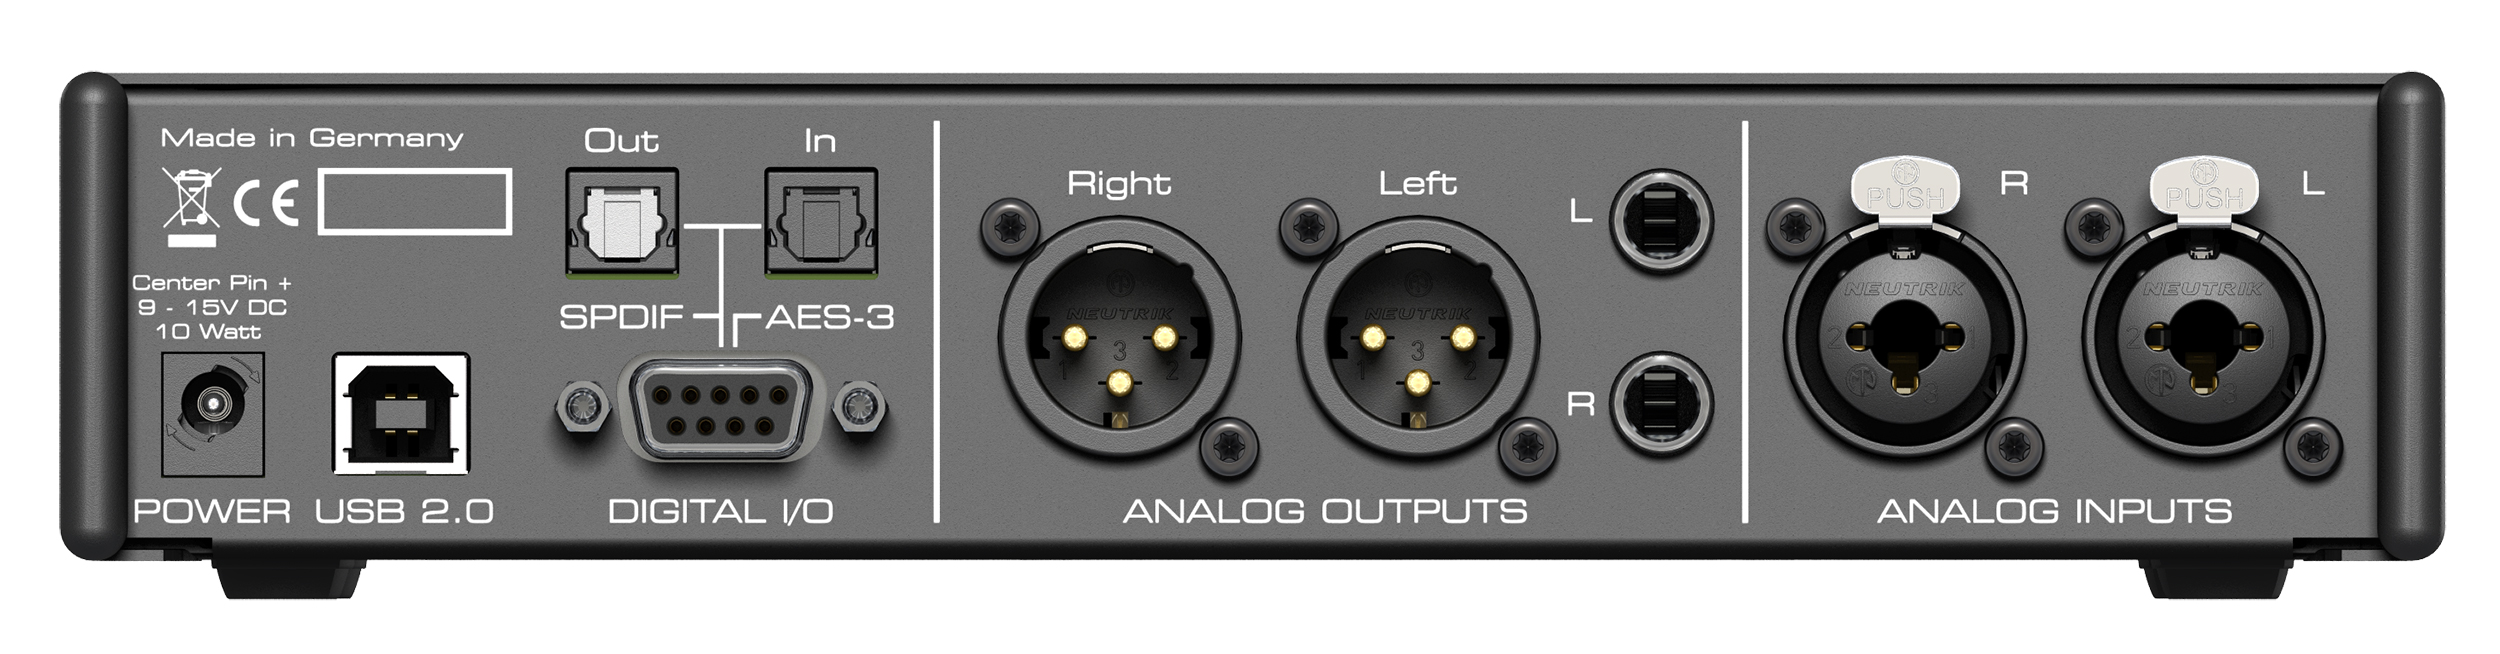 Rme Adi 2 Pro Series 2channel Line Output Converter With Remote Turnon Circuit 4